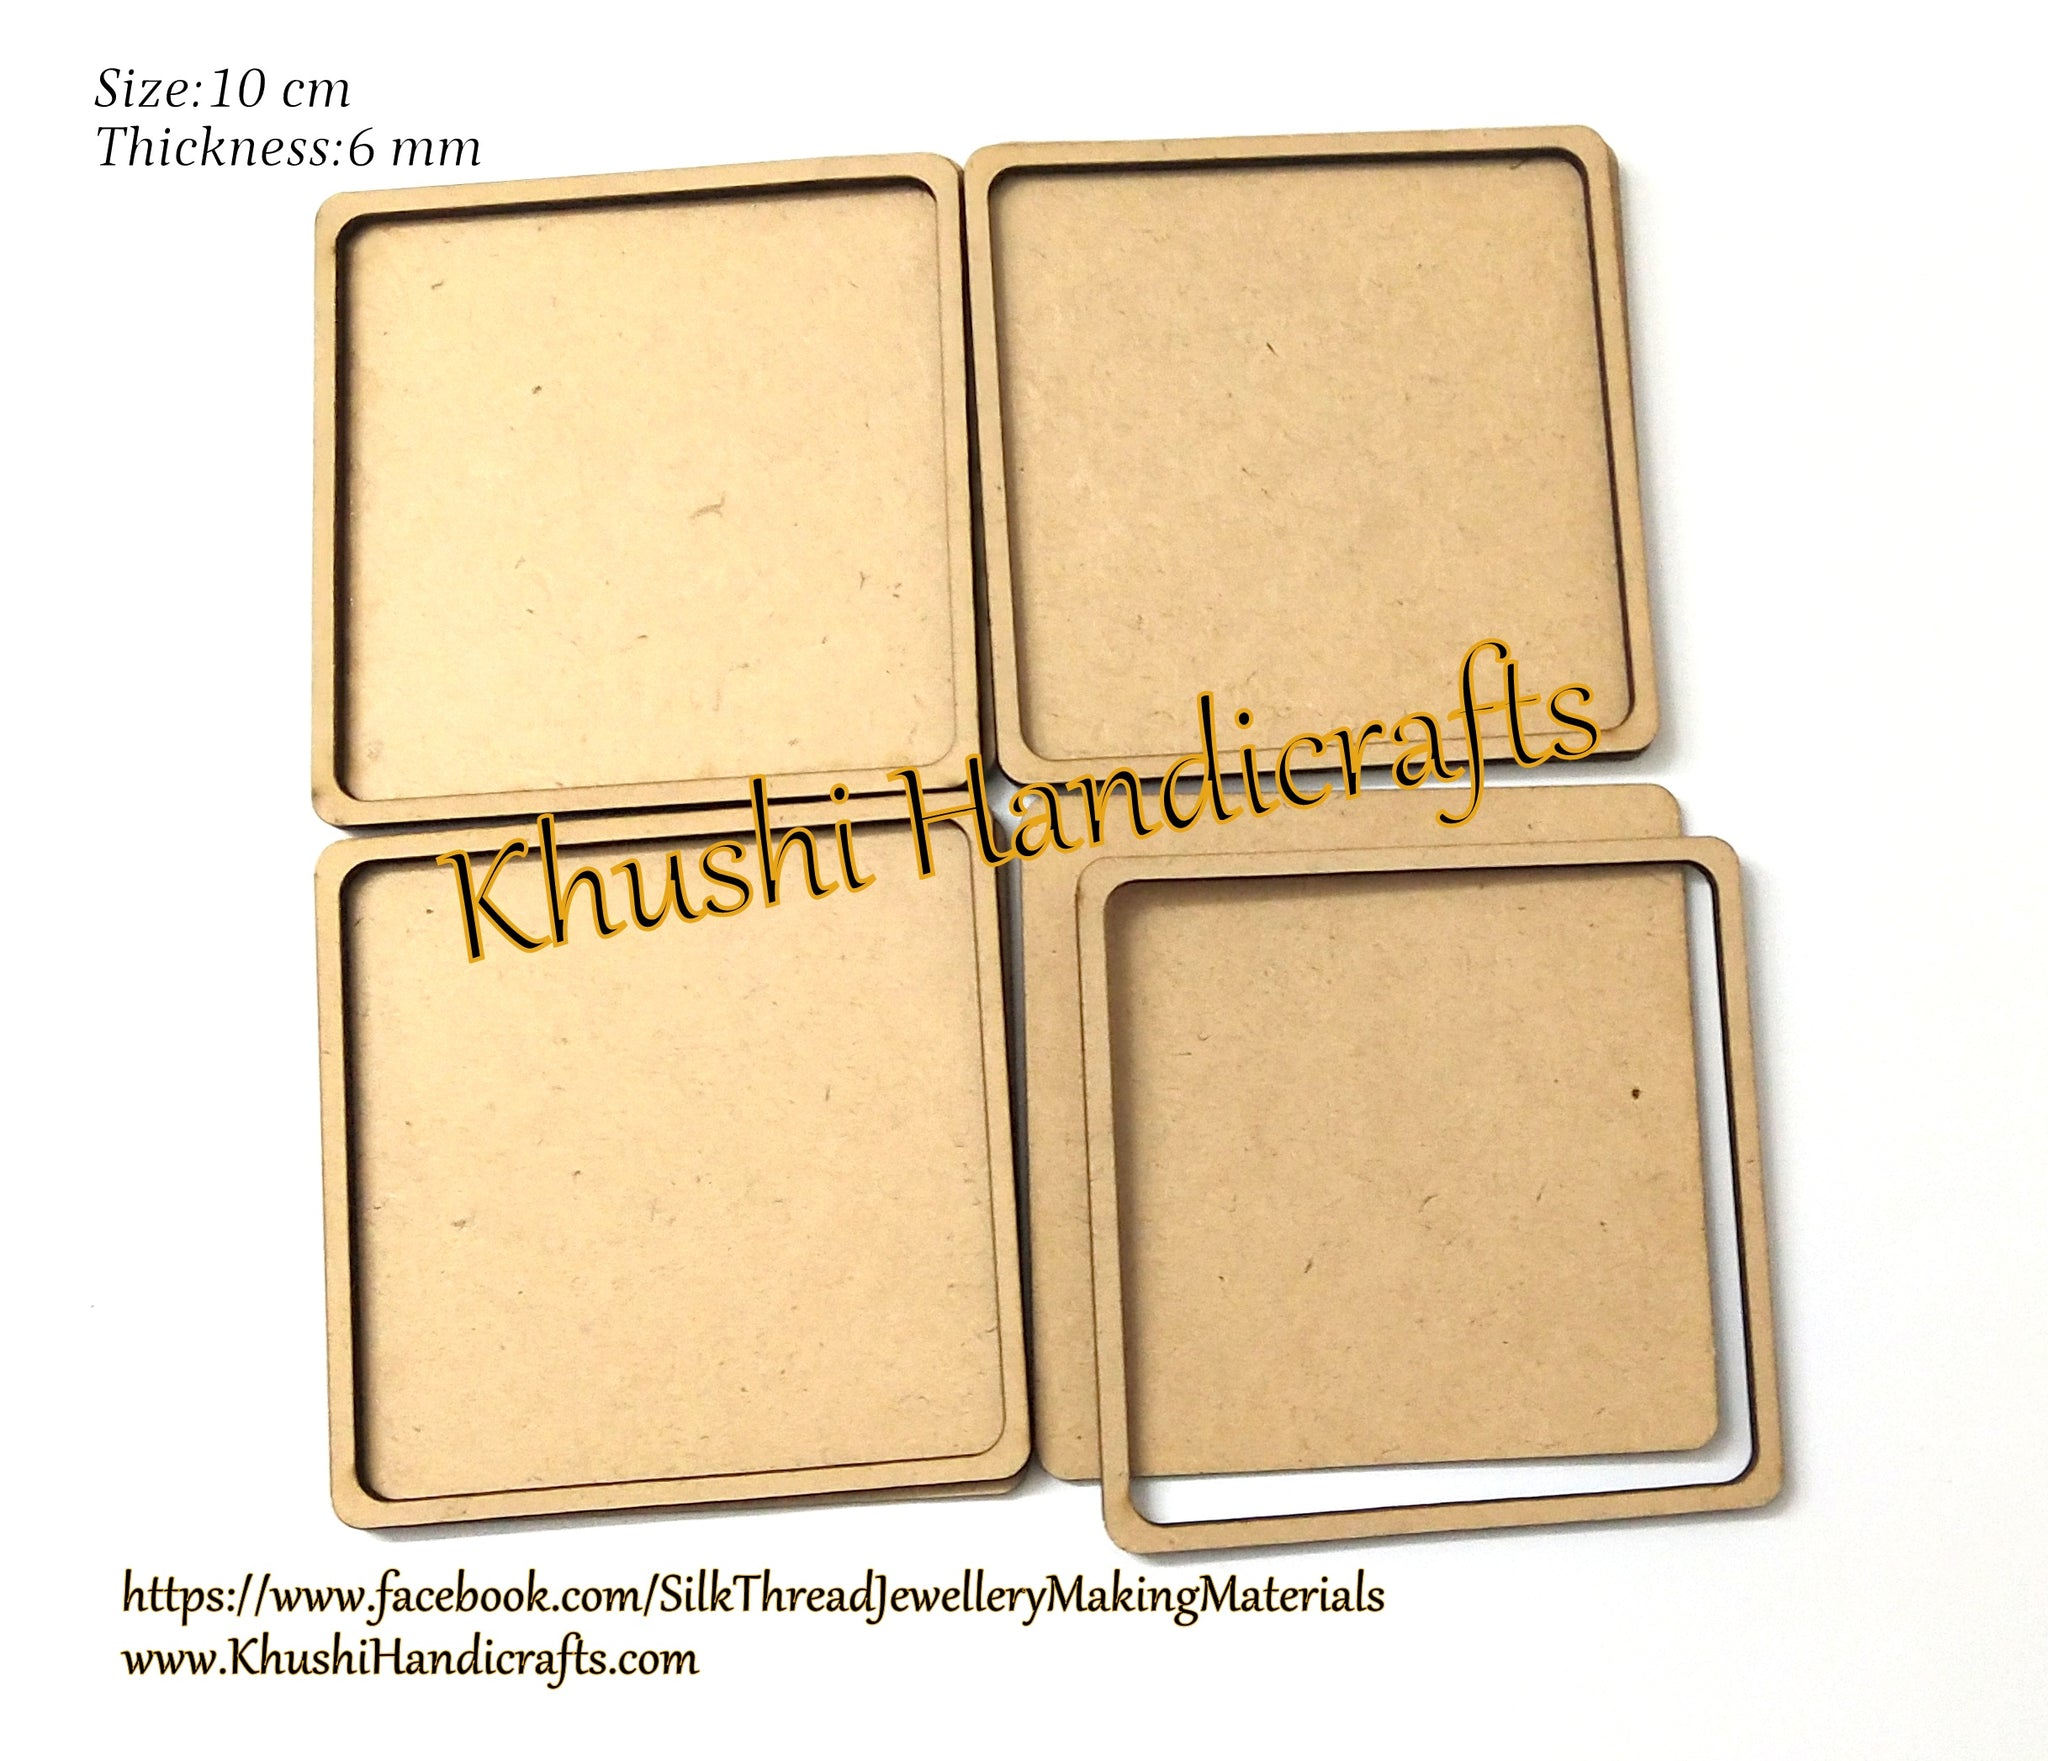 10 cm Round MDF Rimmed Square Coaster bases for Resin,Epoxy resin and Decoupage.Set of 4 pieces!